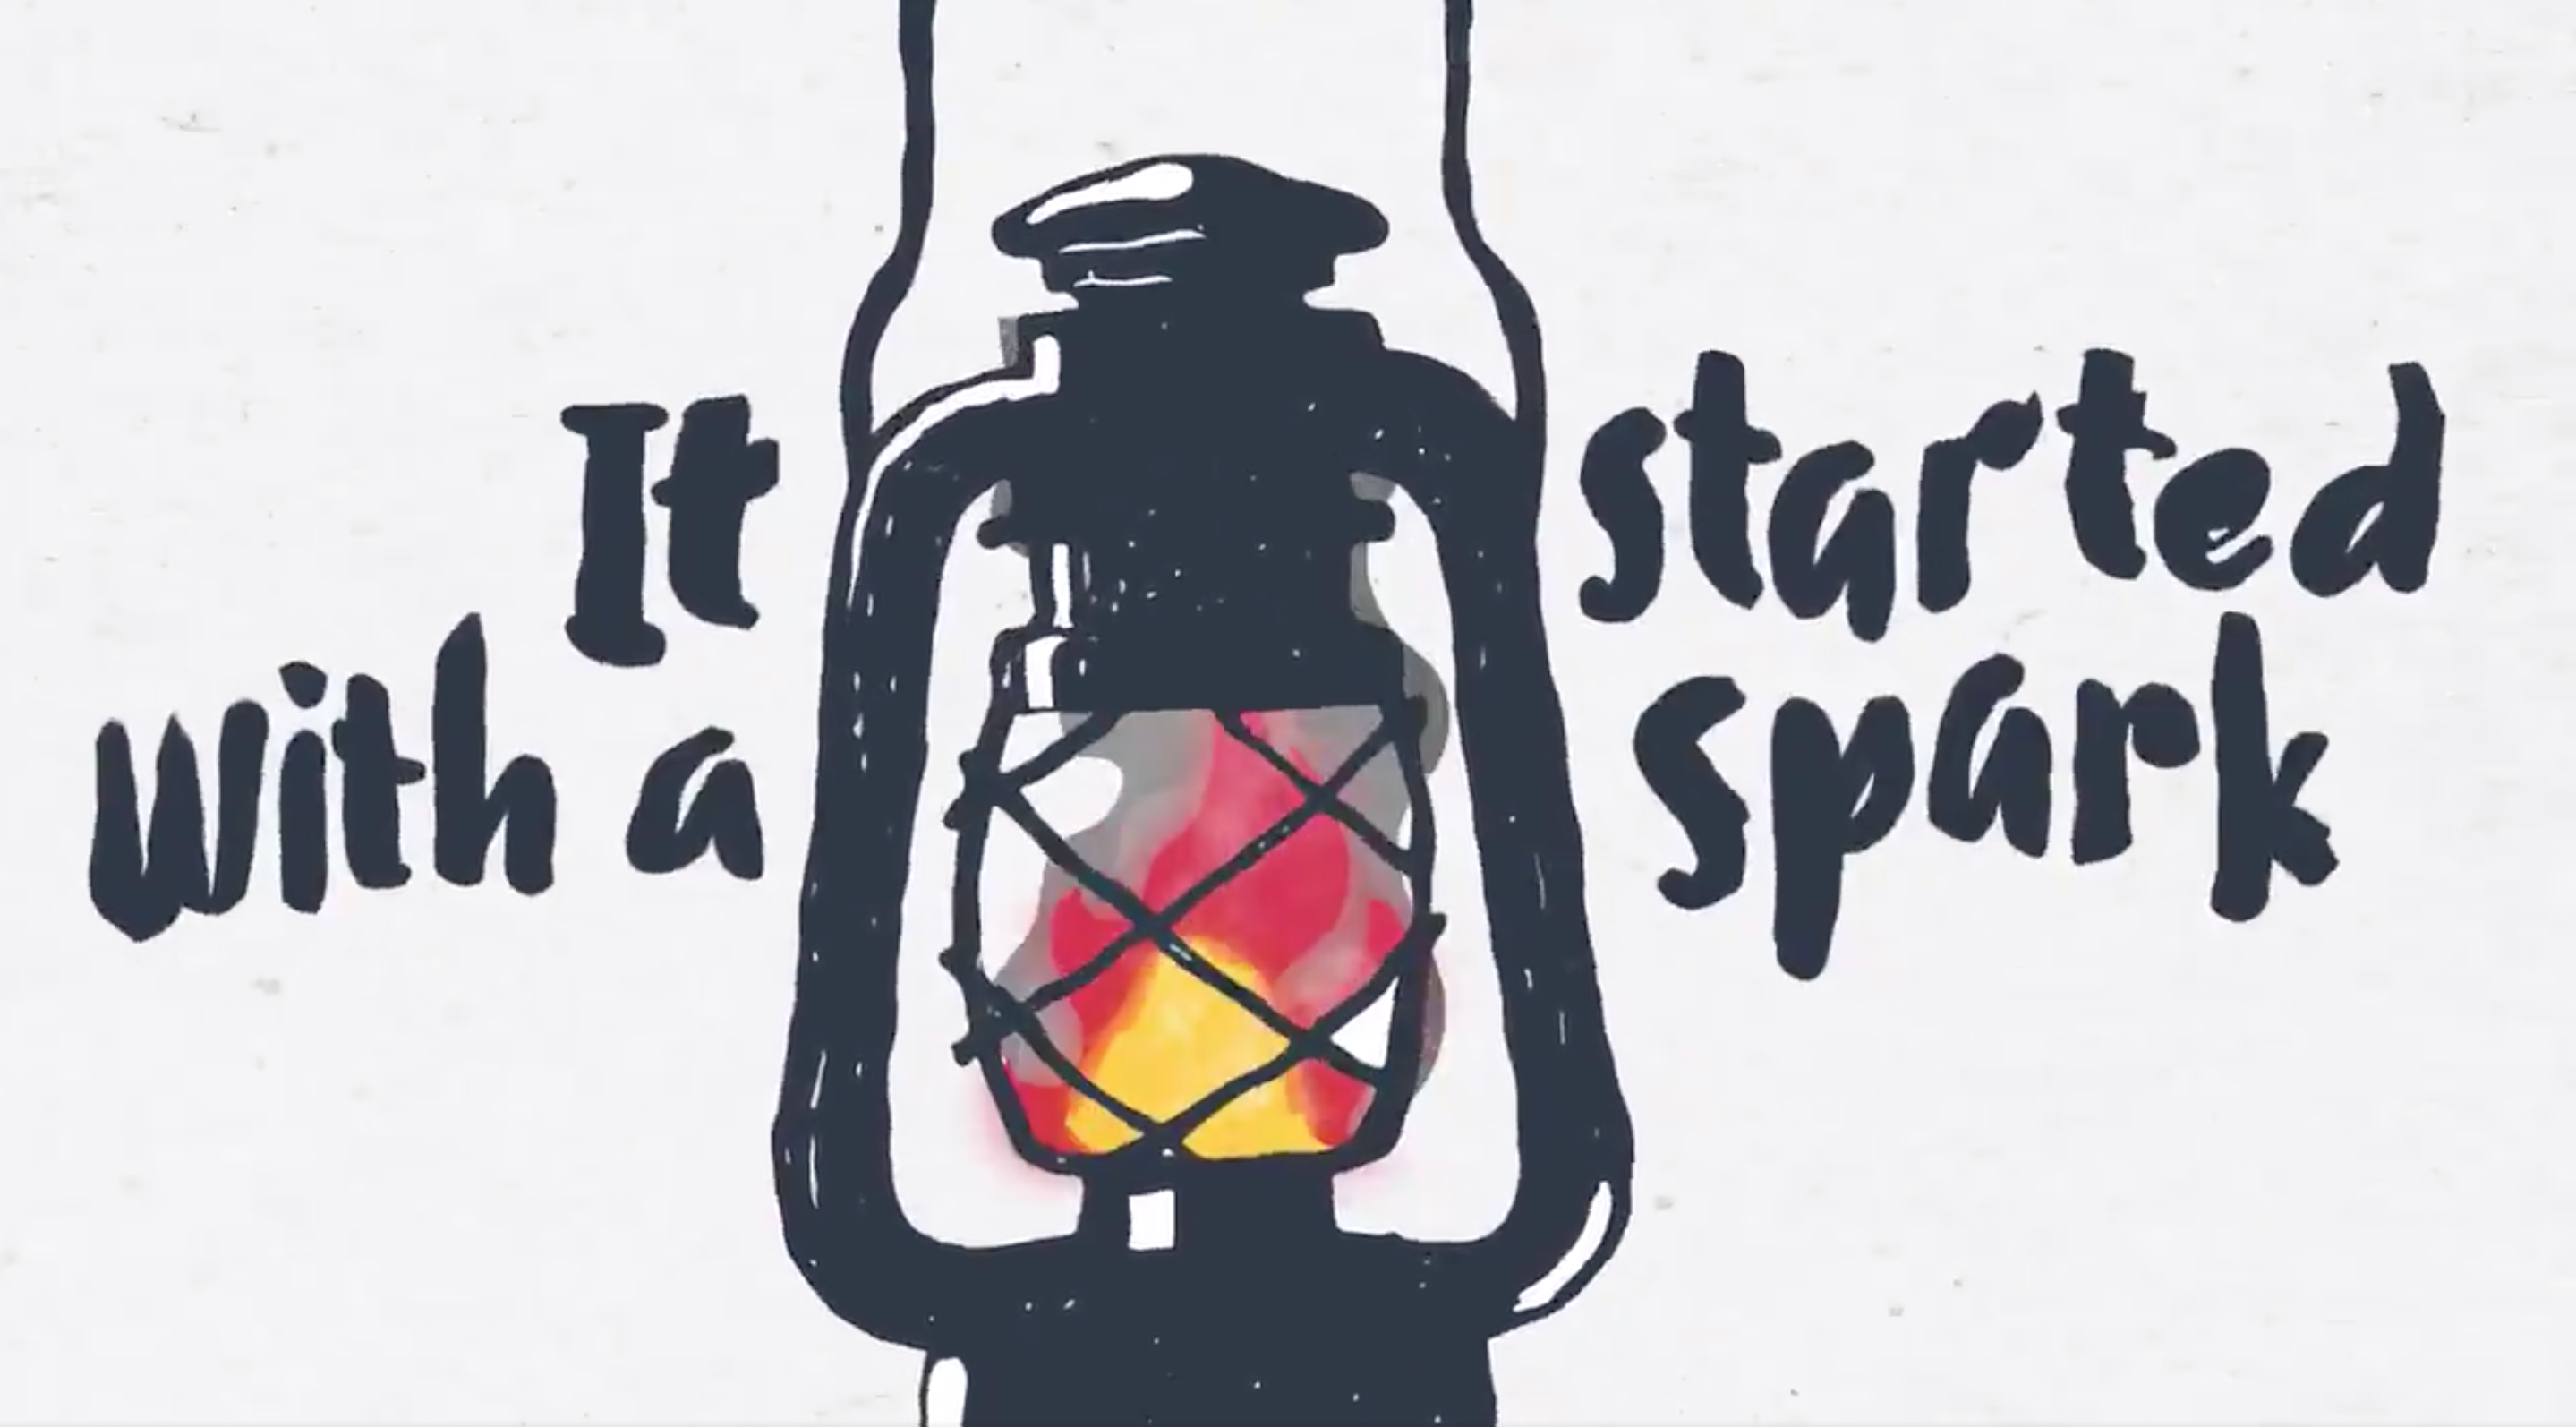 It Started With A Spark